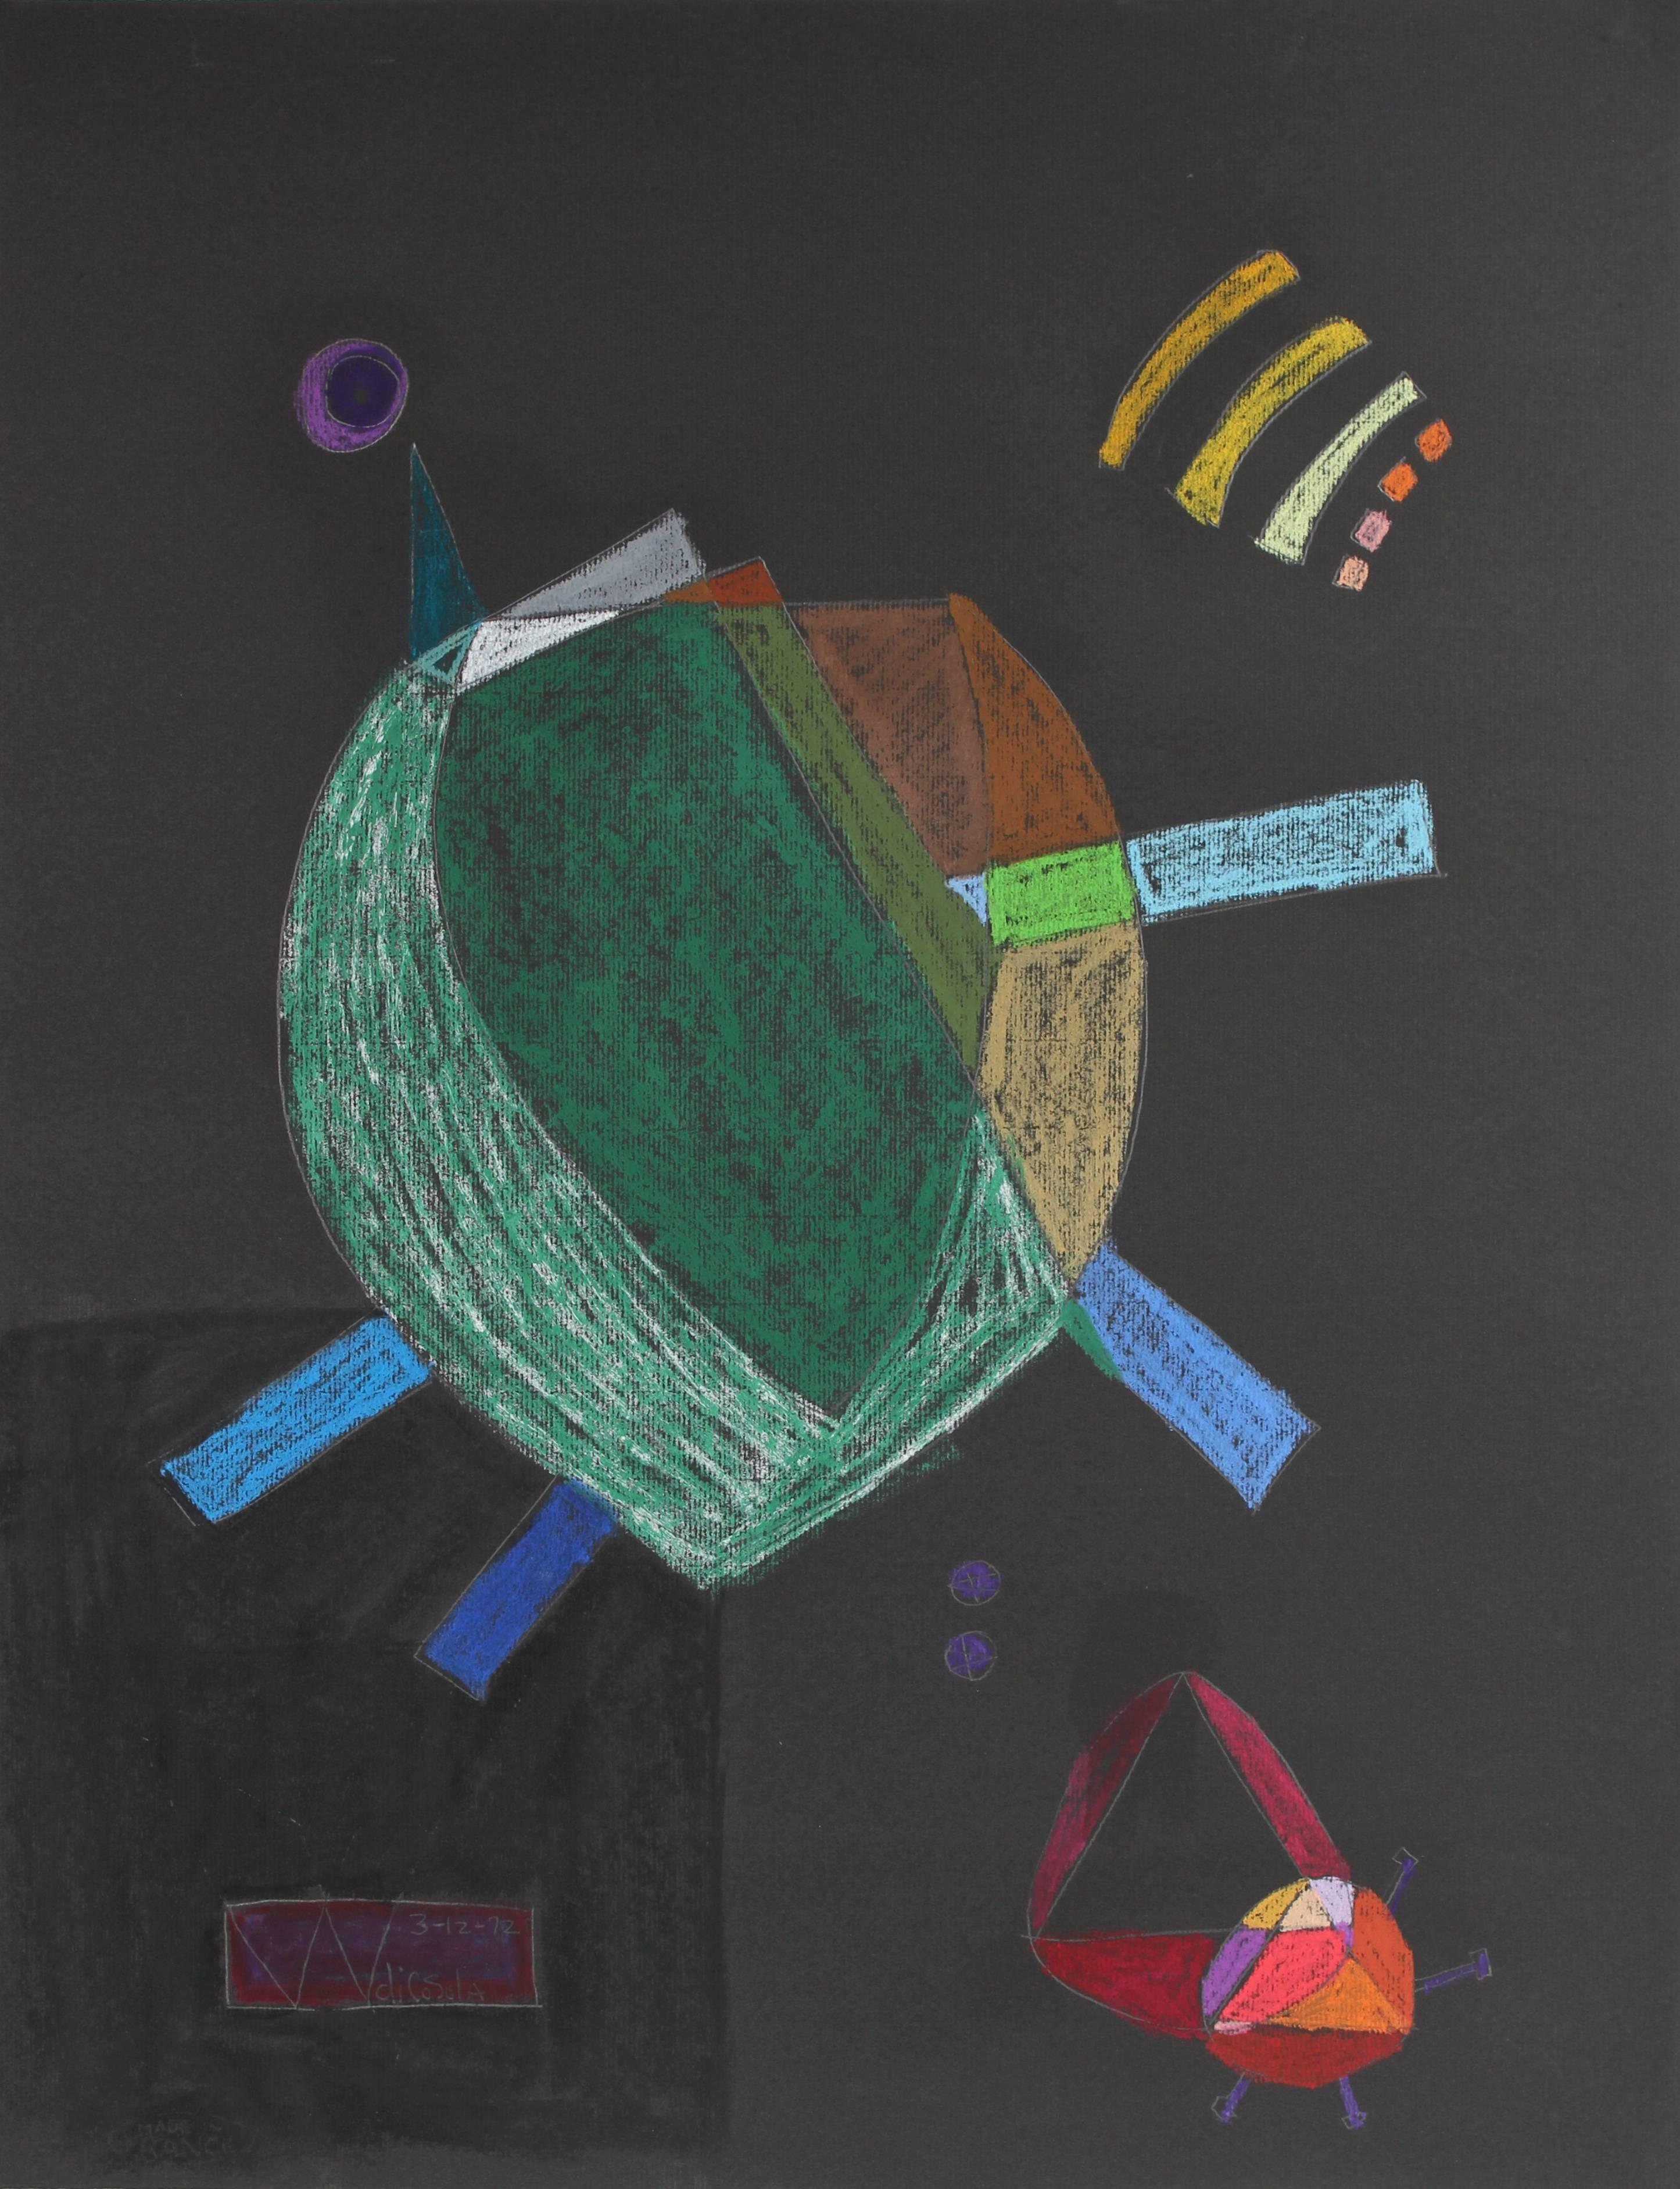 Surrealist Pastel Abstract on Black Paper, 1972